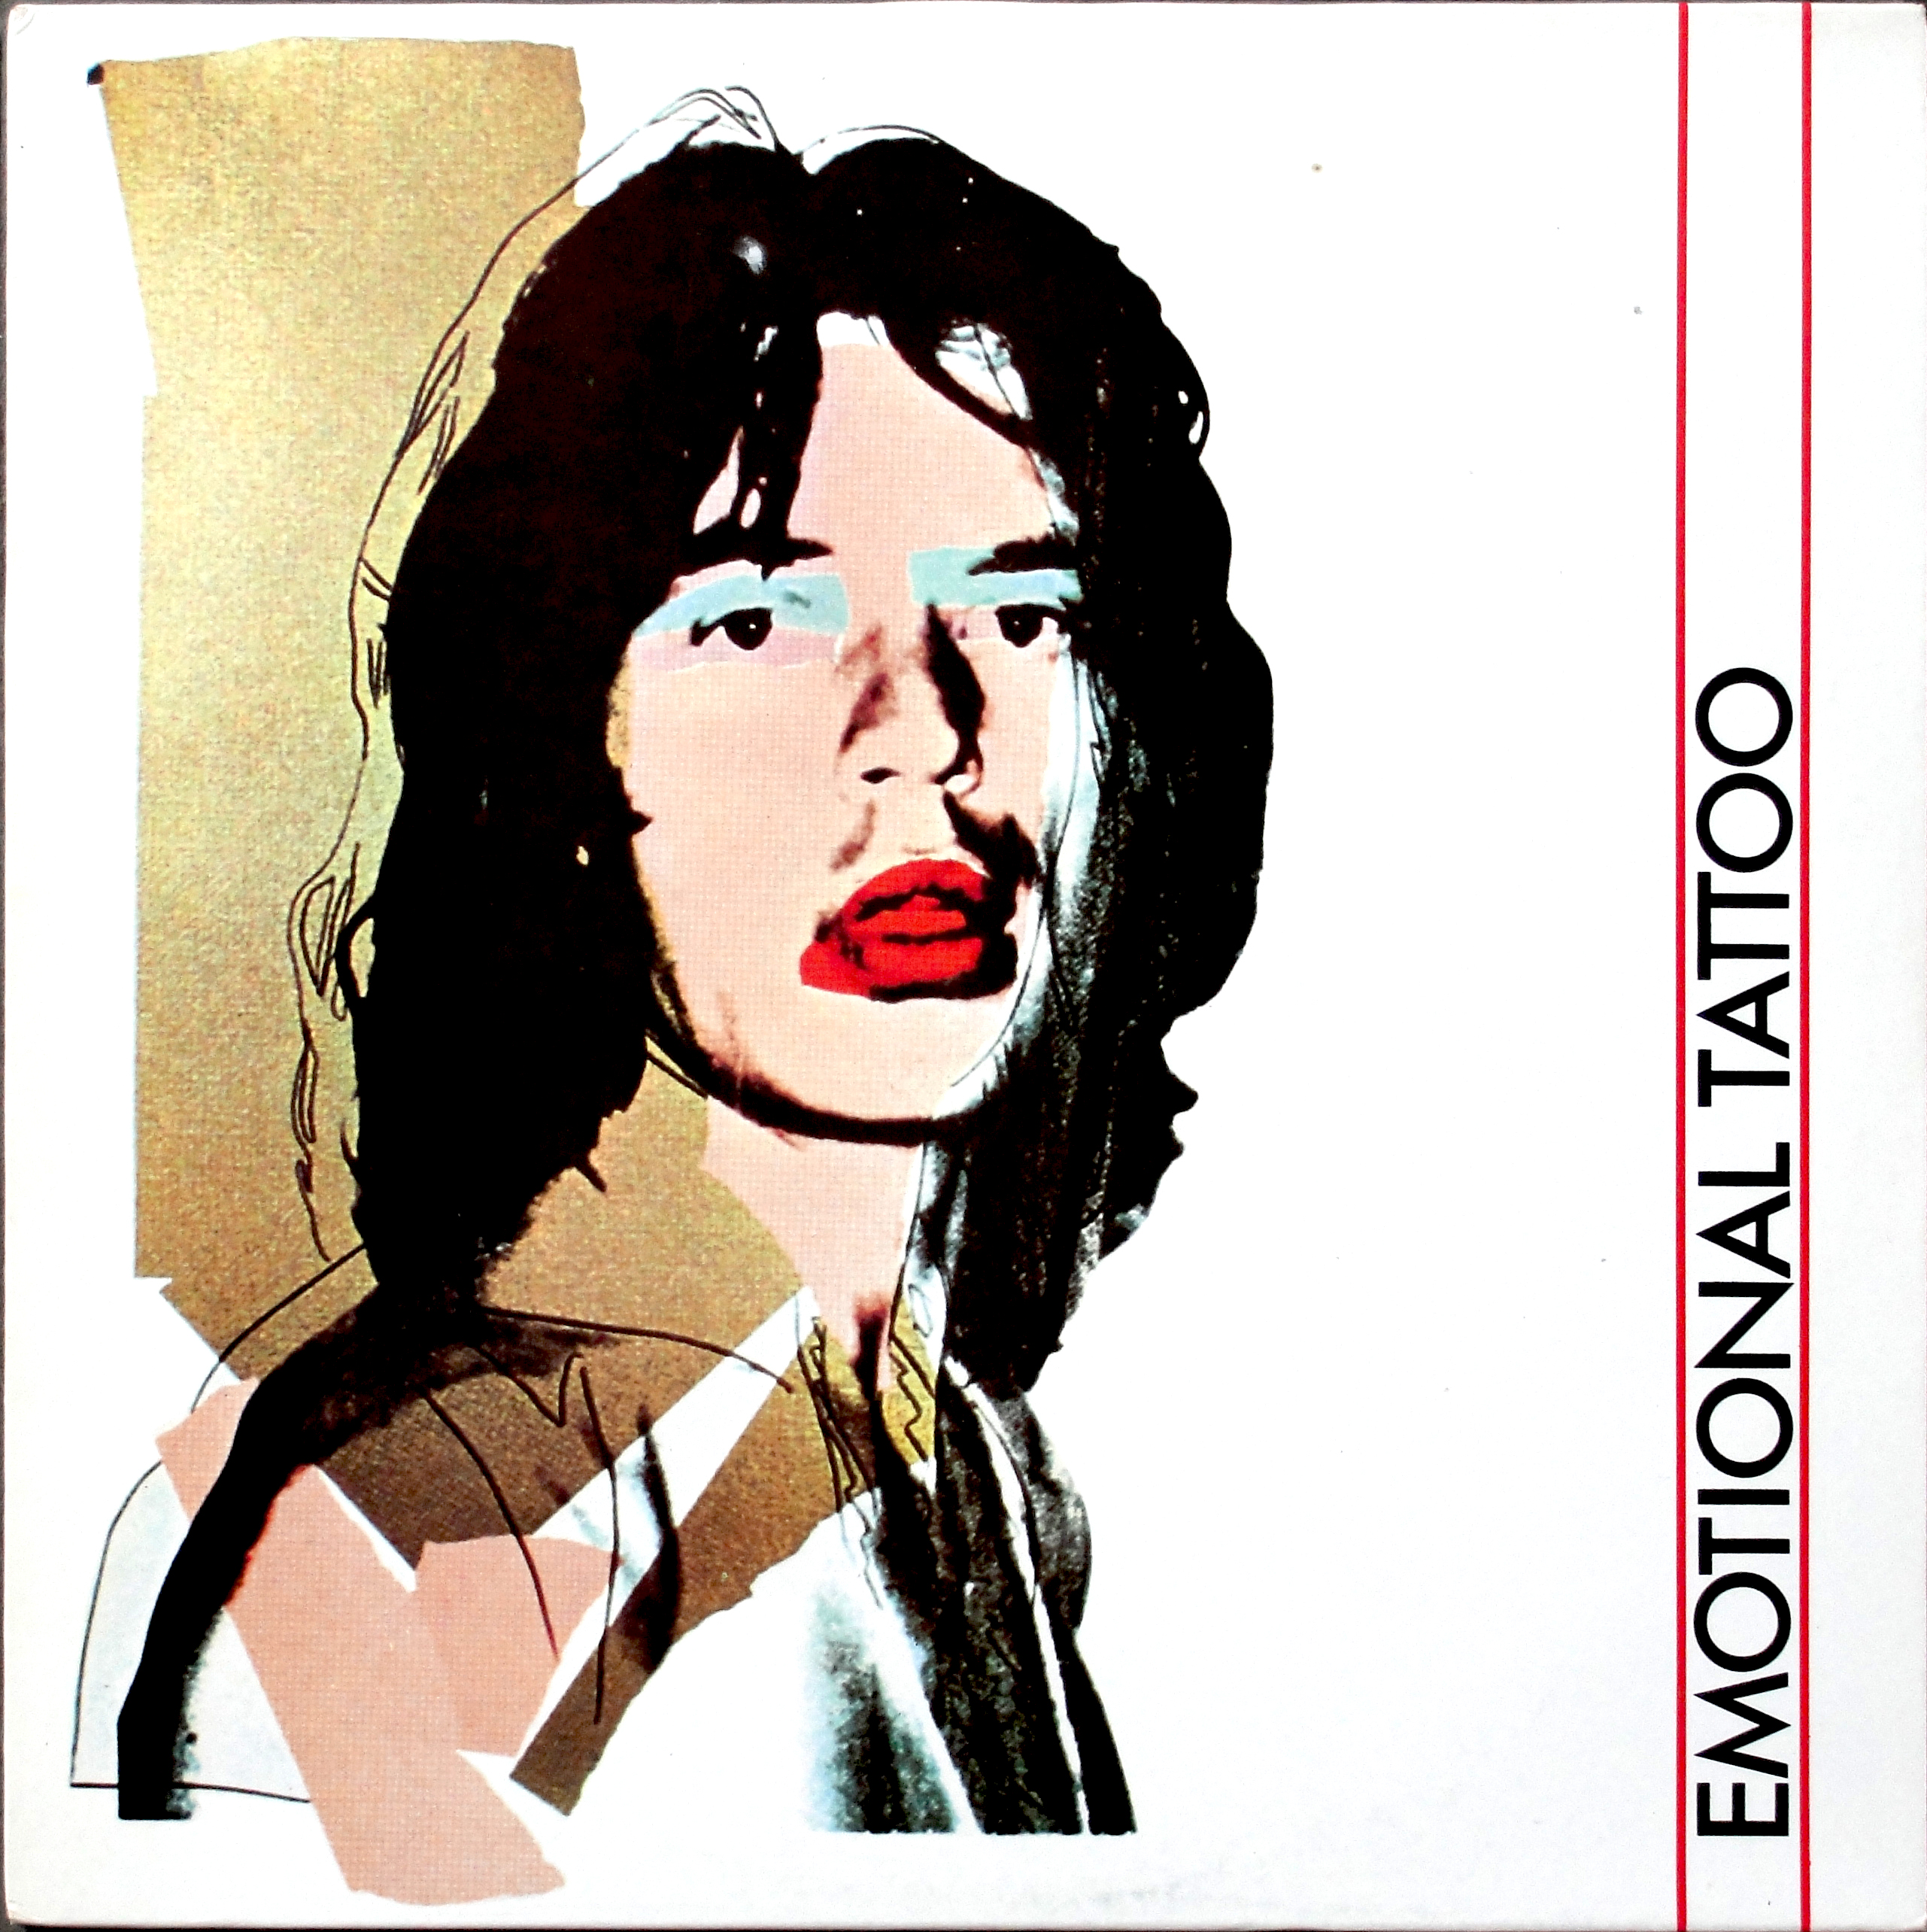 """The Rolling Stones' """"Emotional Tattoo"""" bootleg album with"""